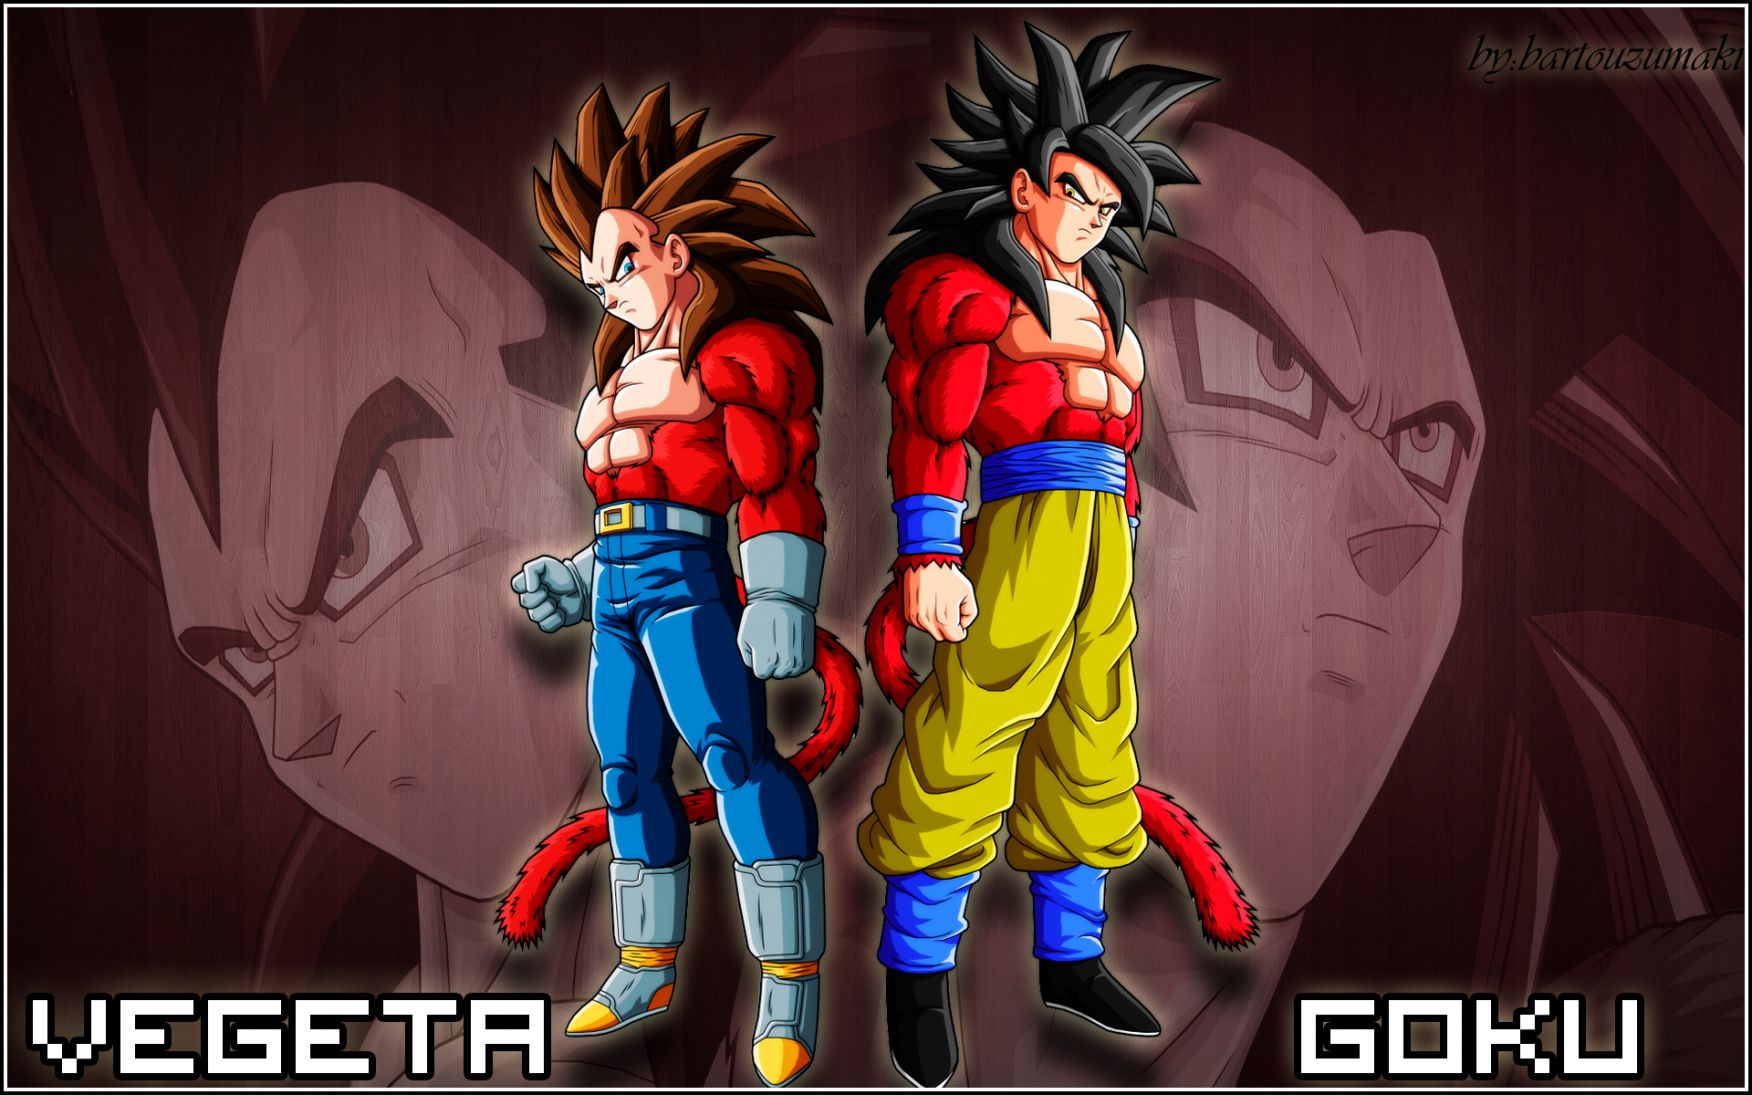 Wallpaper Goku Y Vegeta Ssj4 Full HD